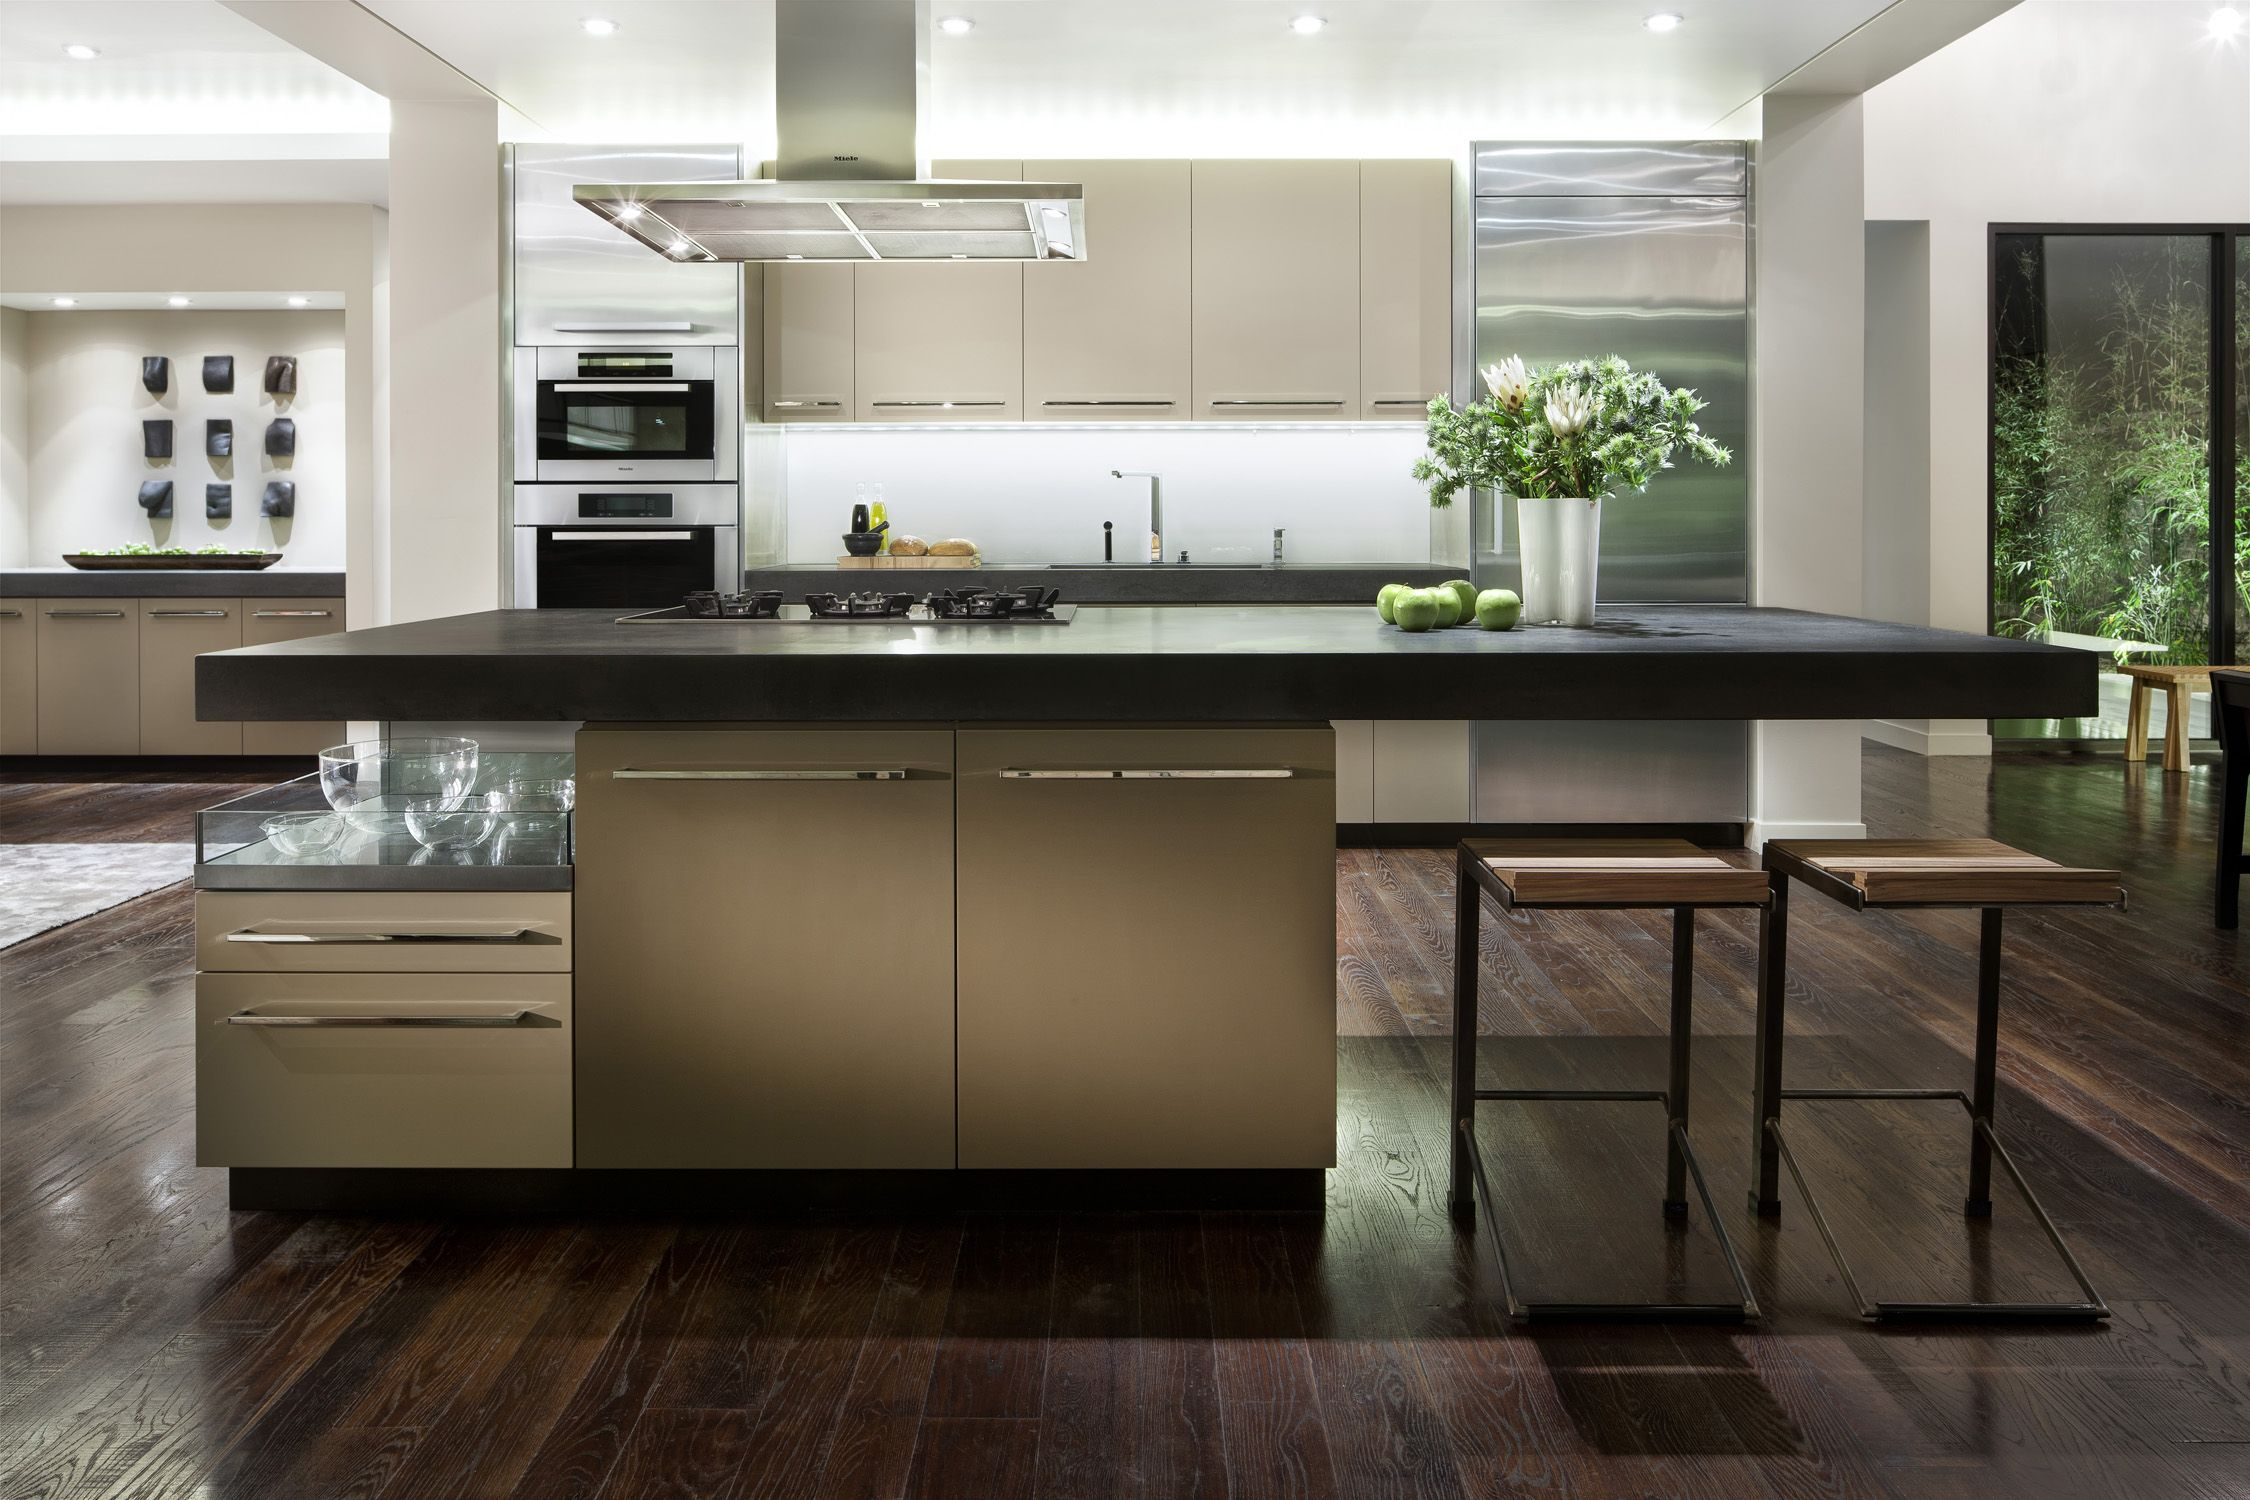 Miele Kitchen Design Miele Kitchen By Tamie Glass And Uli Danel Kitchen 43 Bath